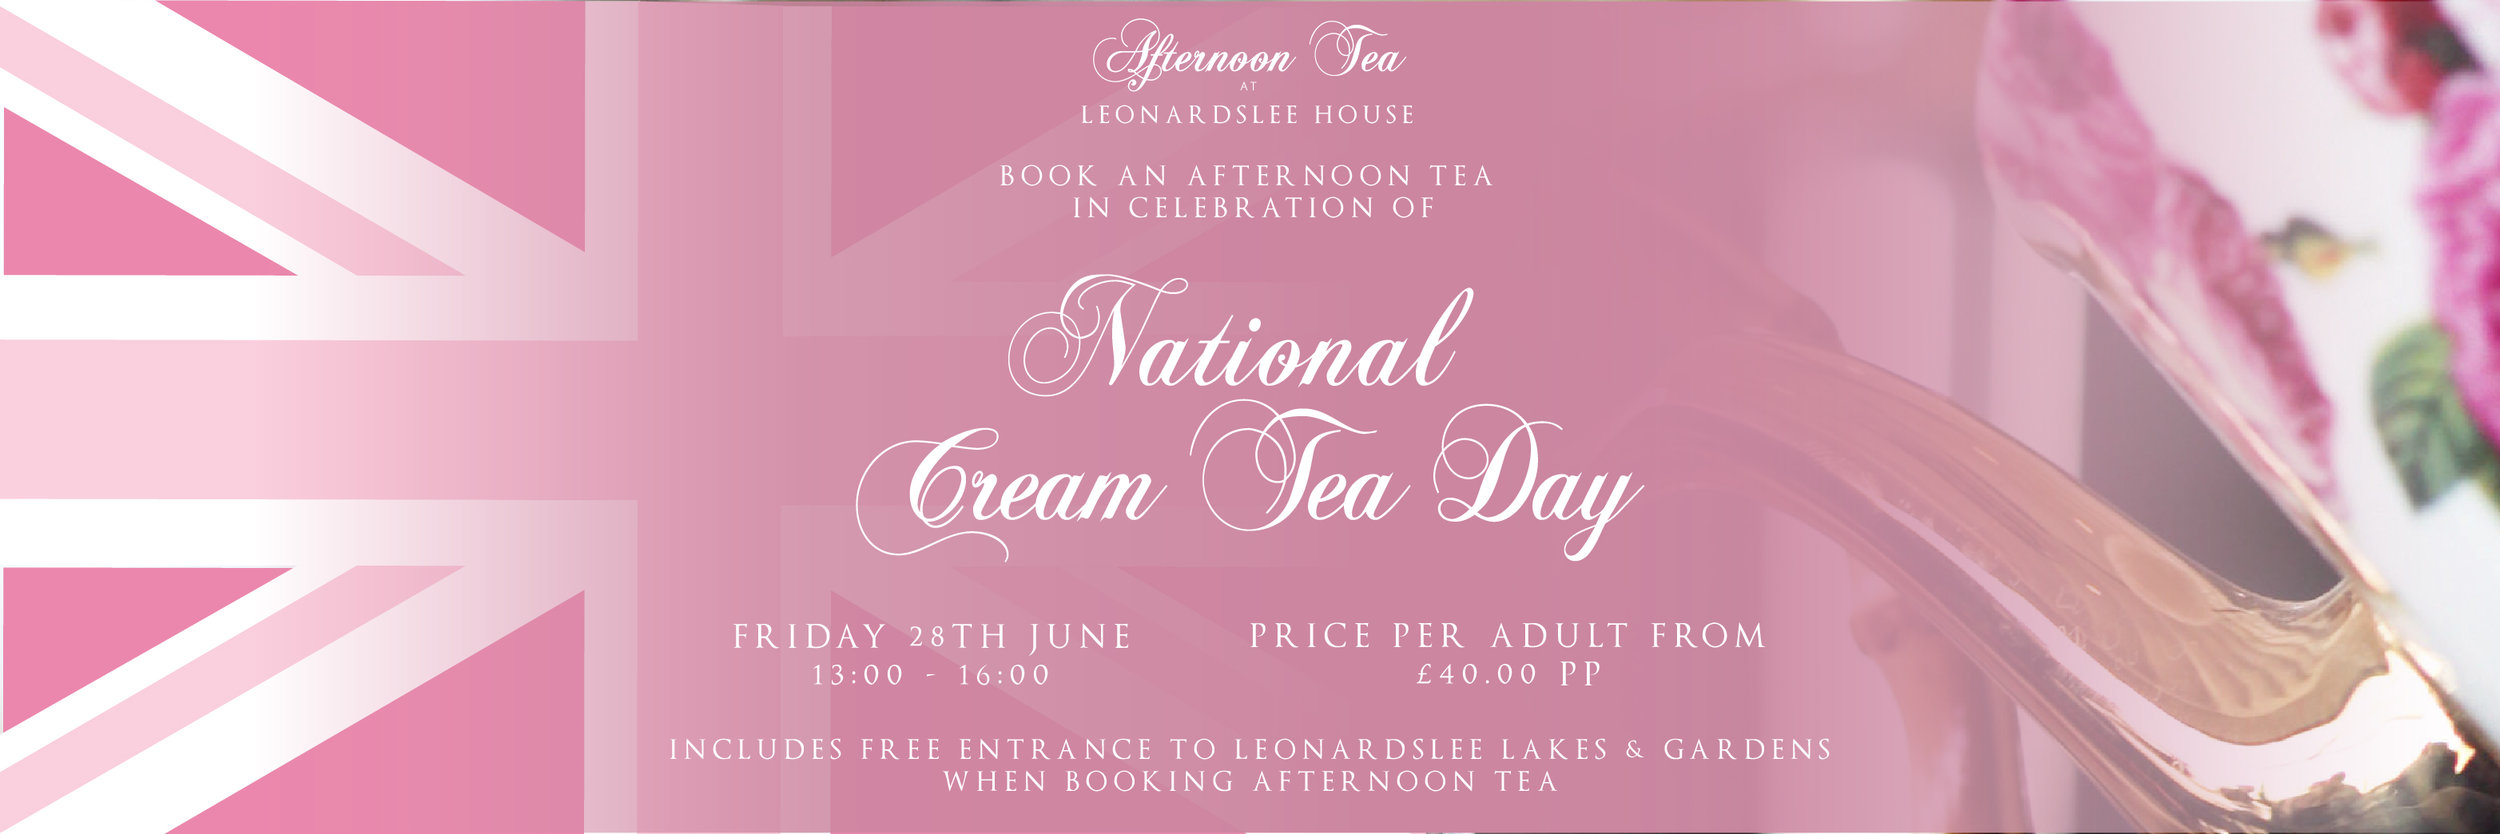 Cream Tea day sussex